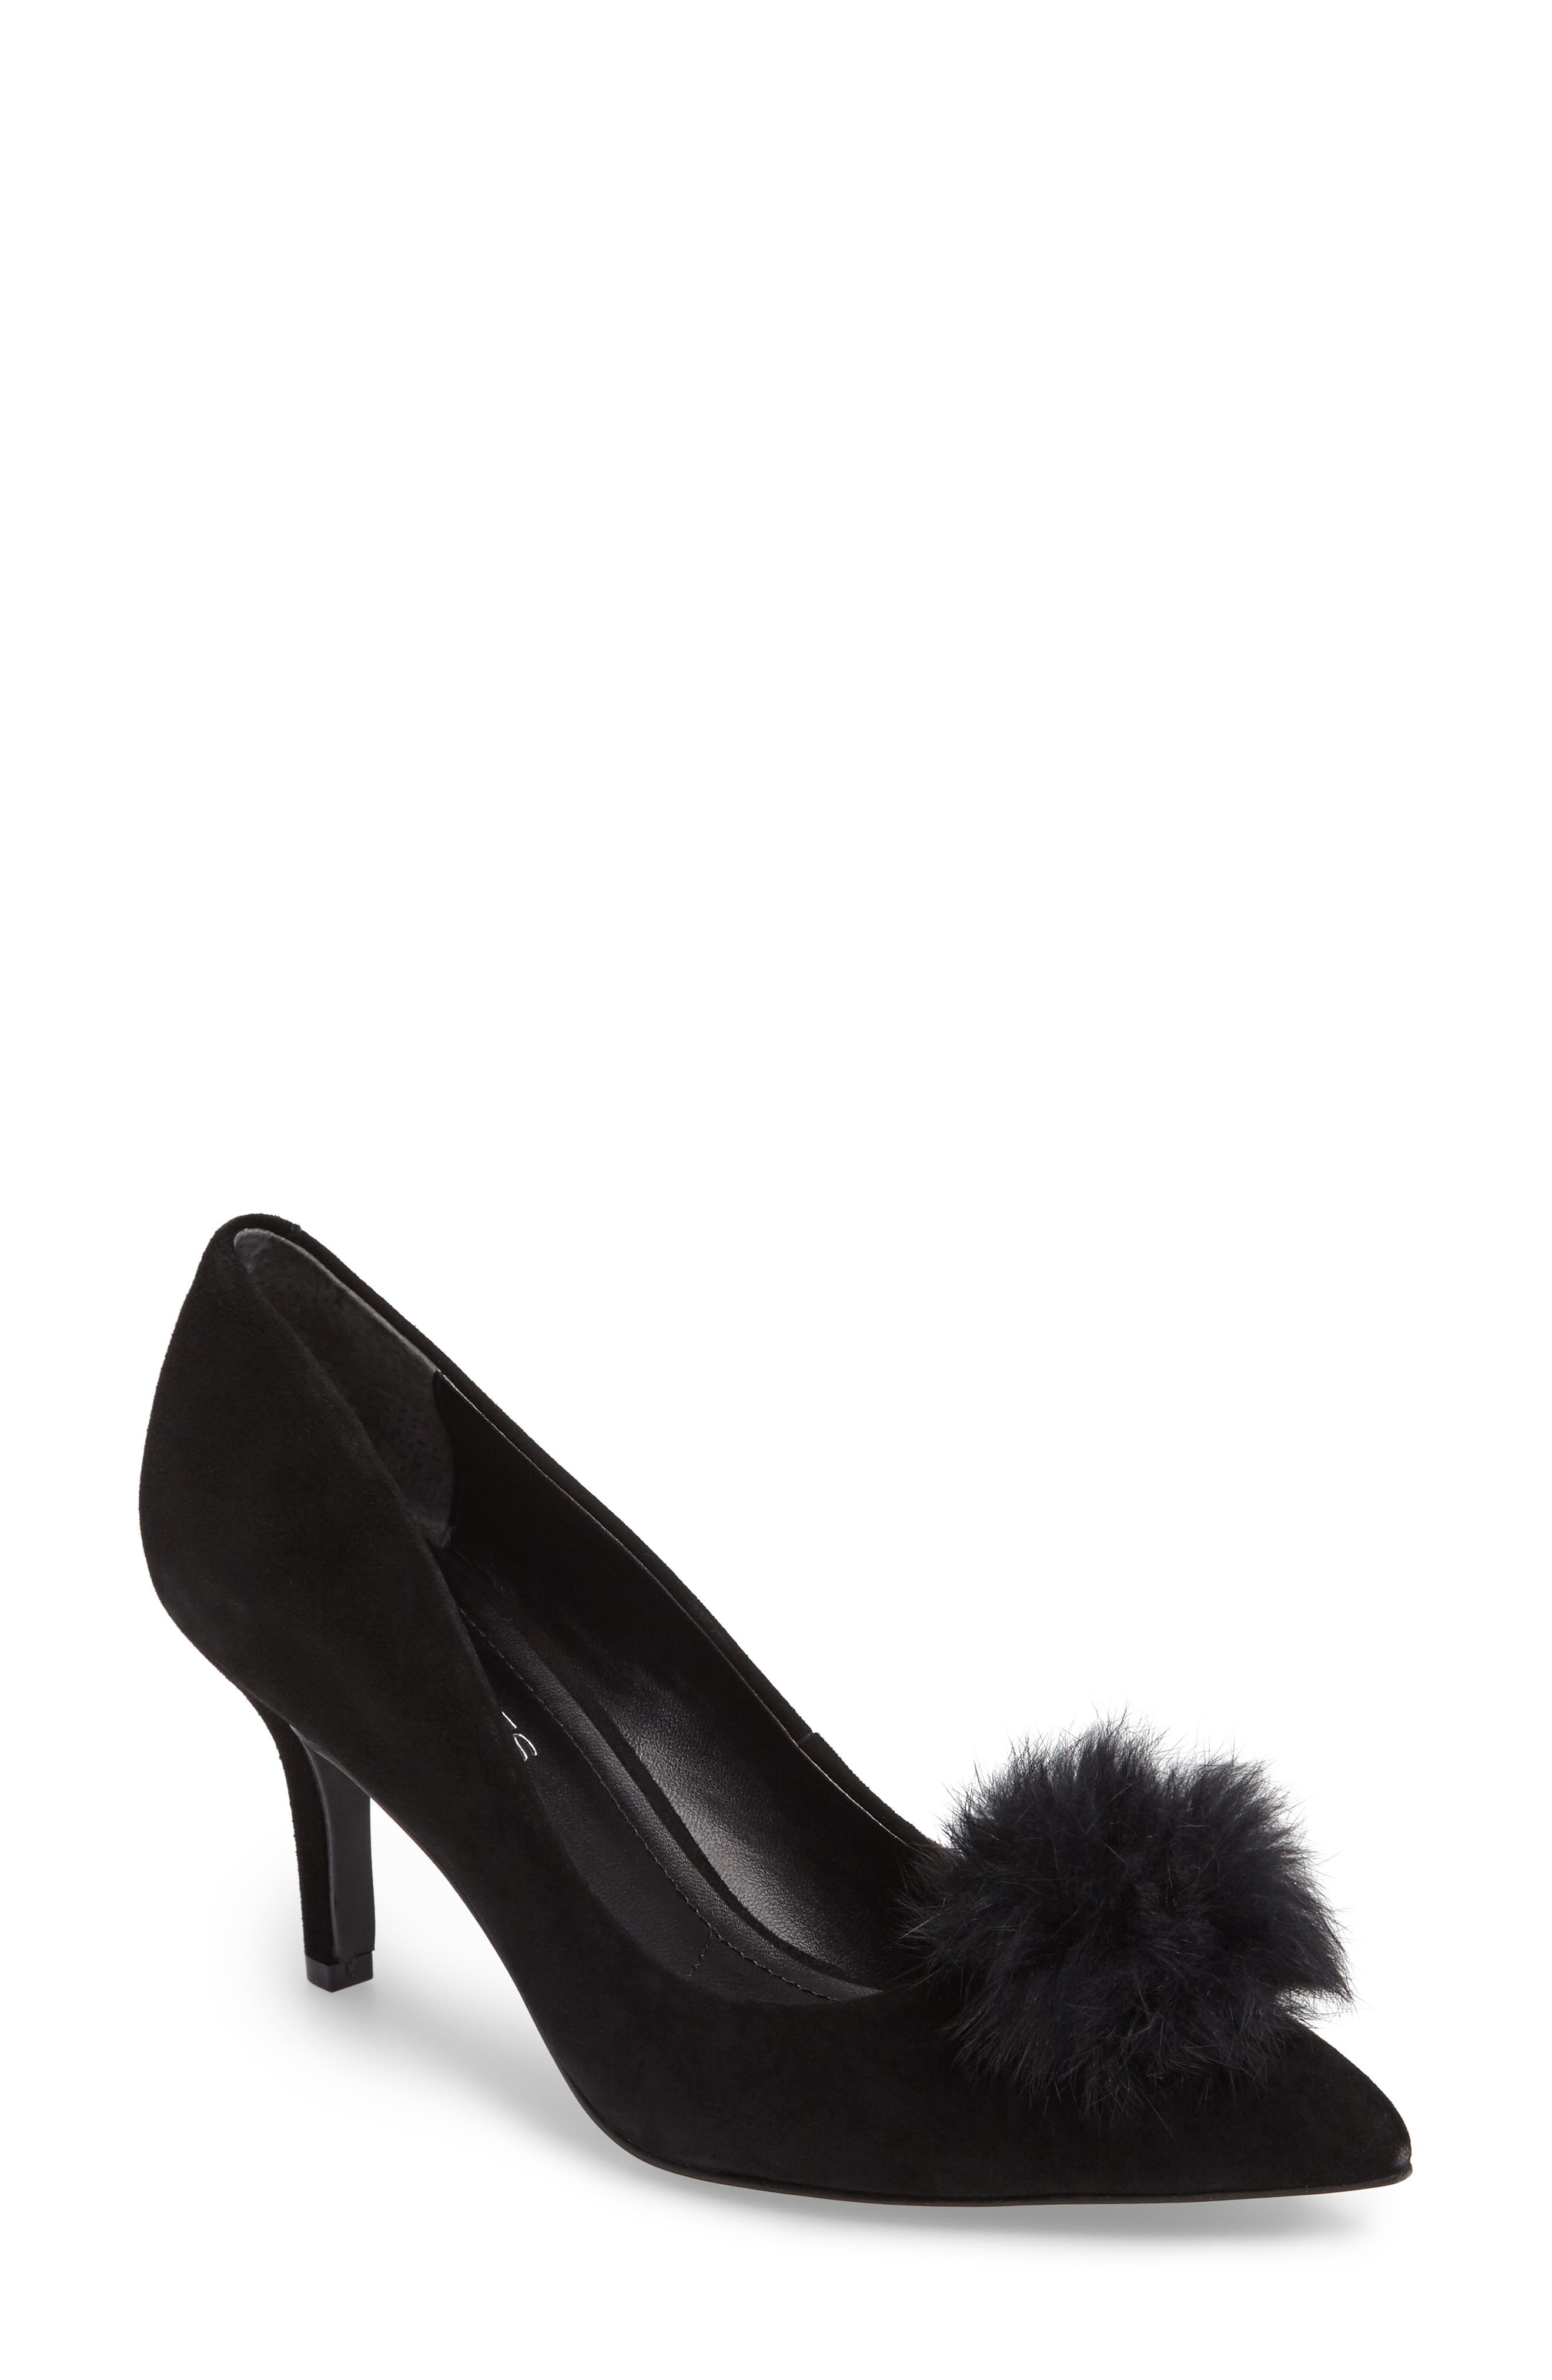 Sadie Genuine Rabbit Fur Pom Pump,                         Main,                         color, 001